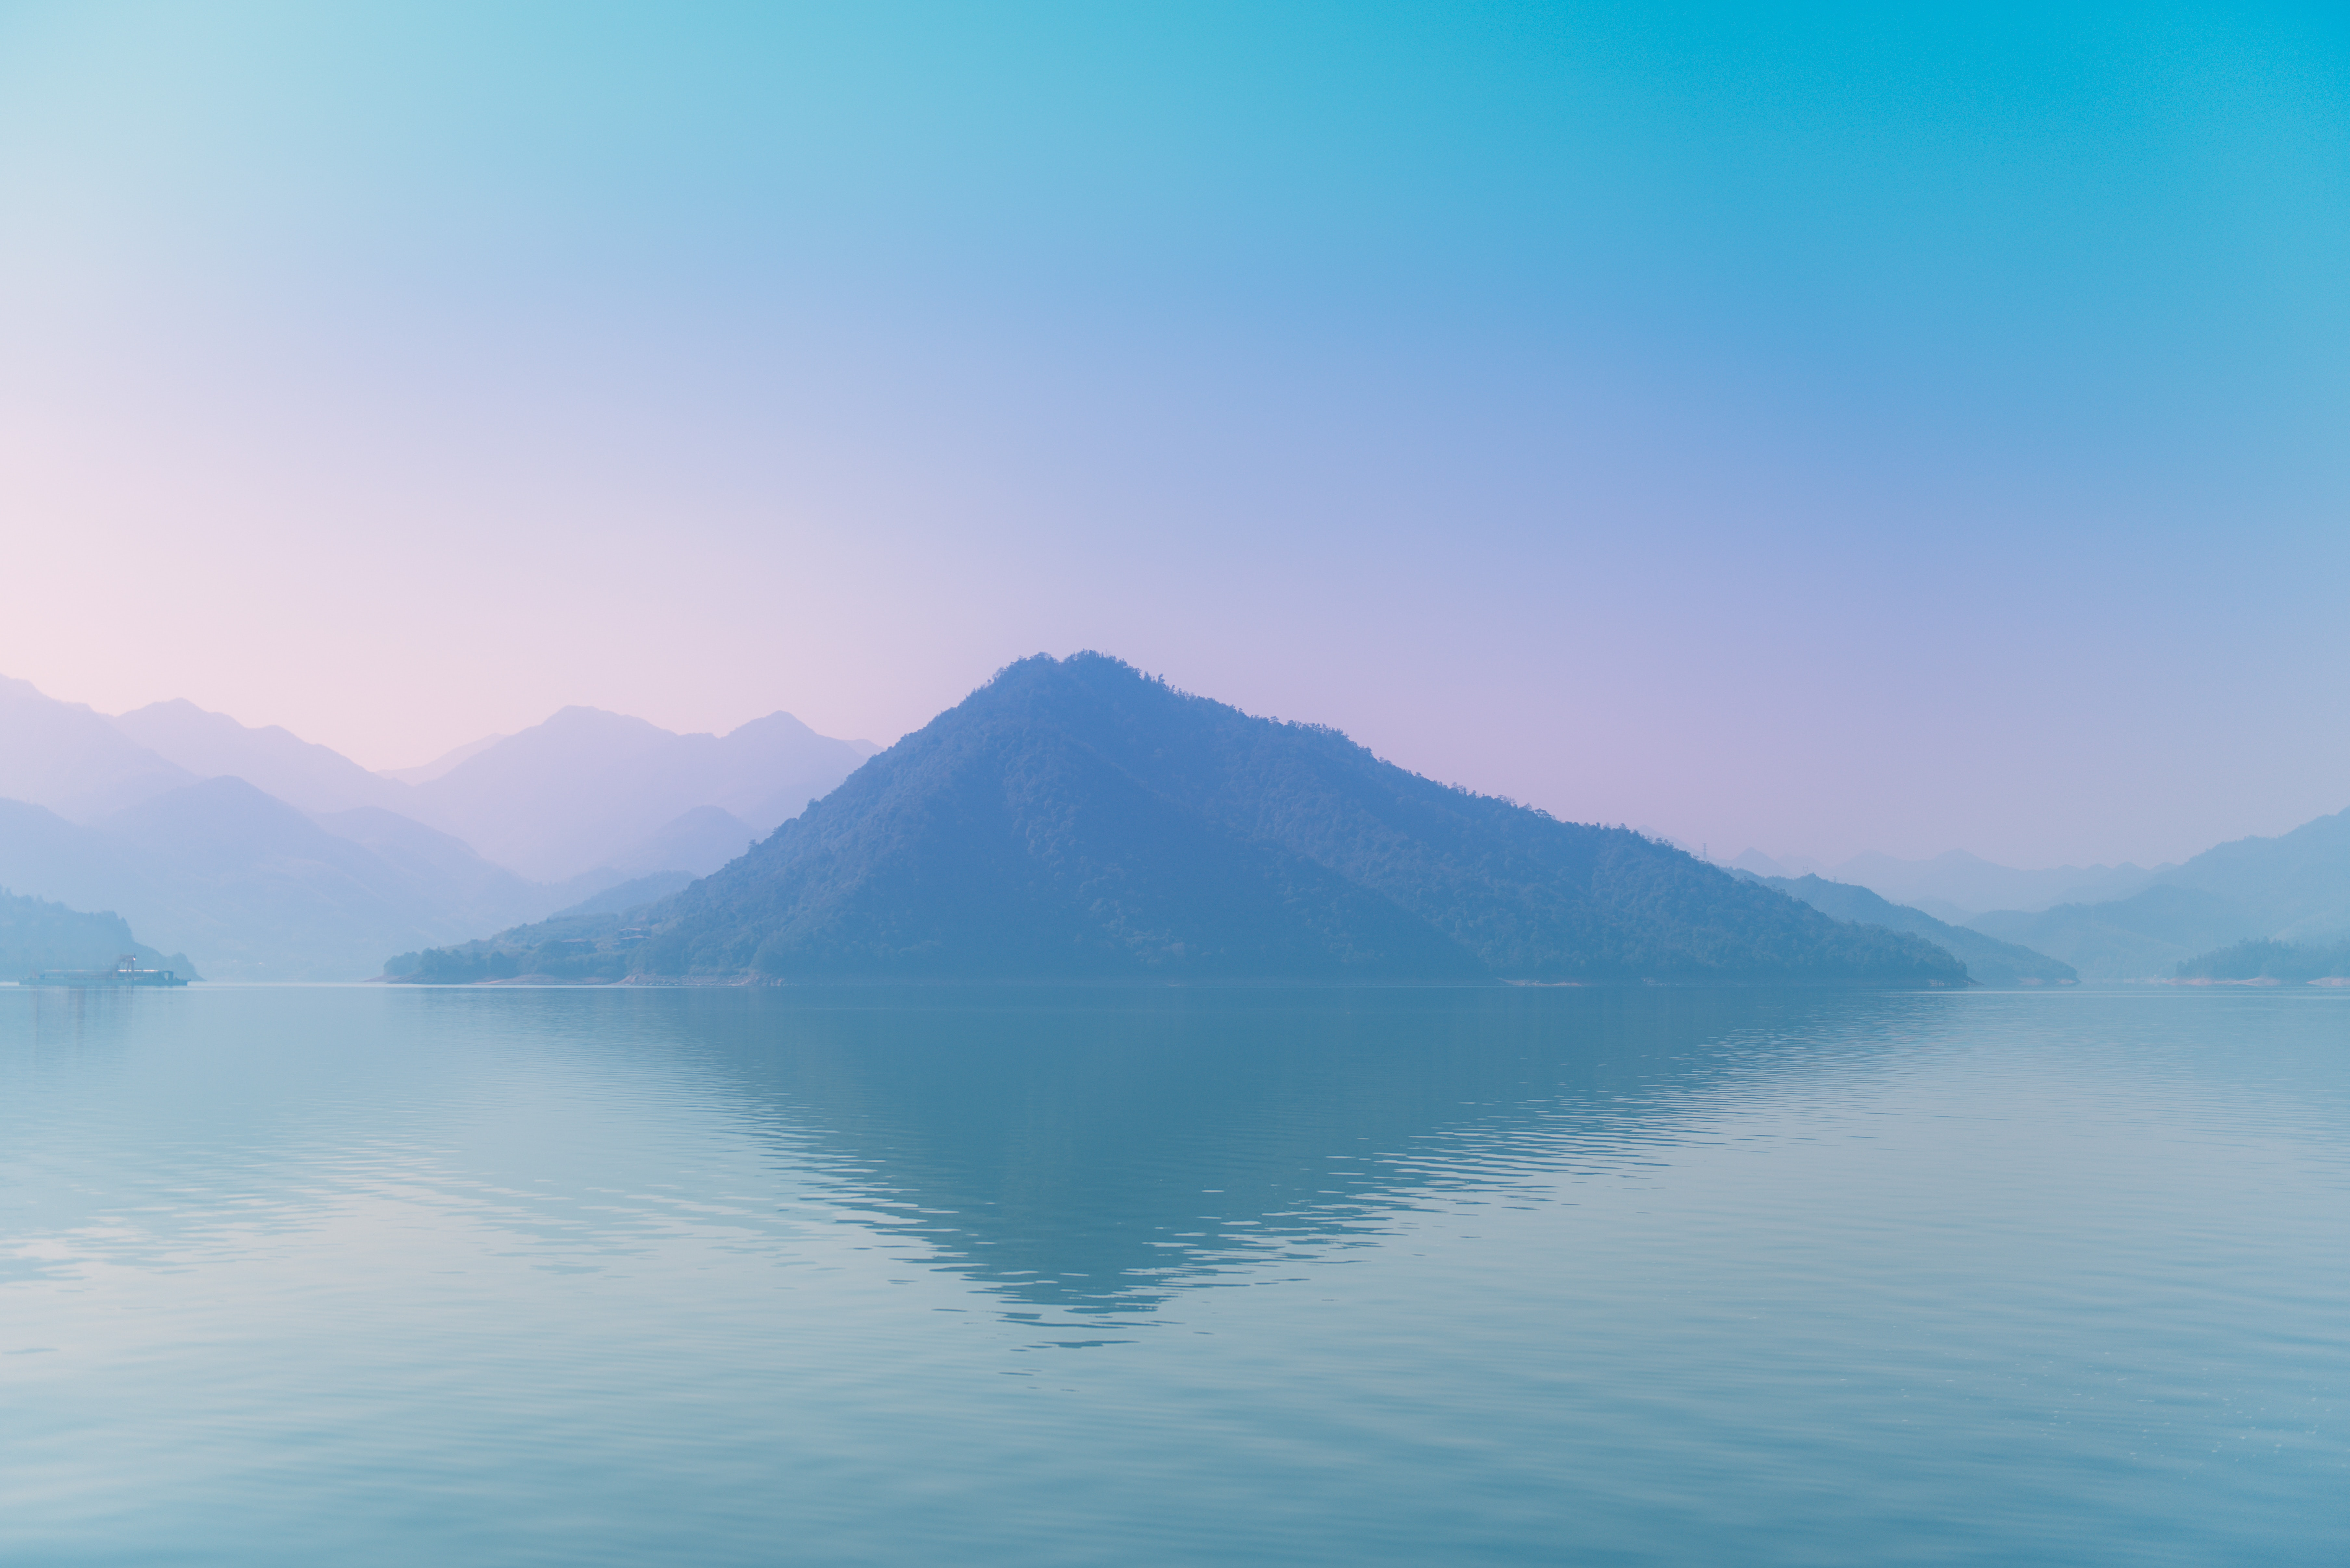 mountain surround by body of water